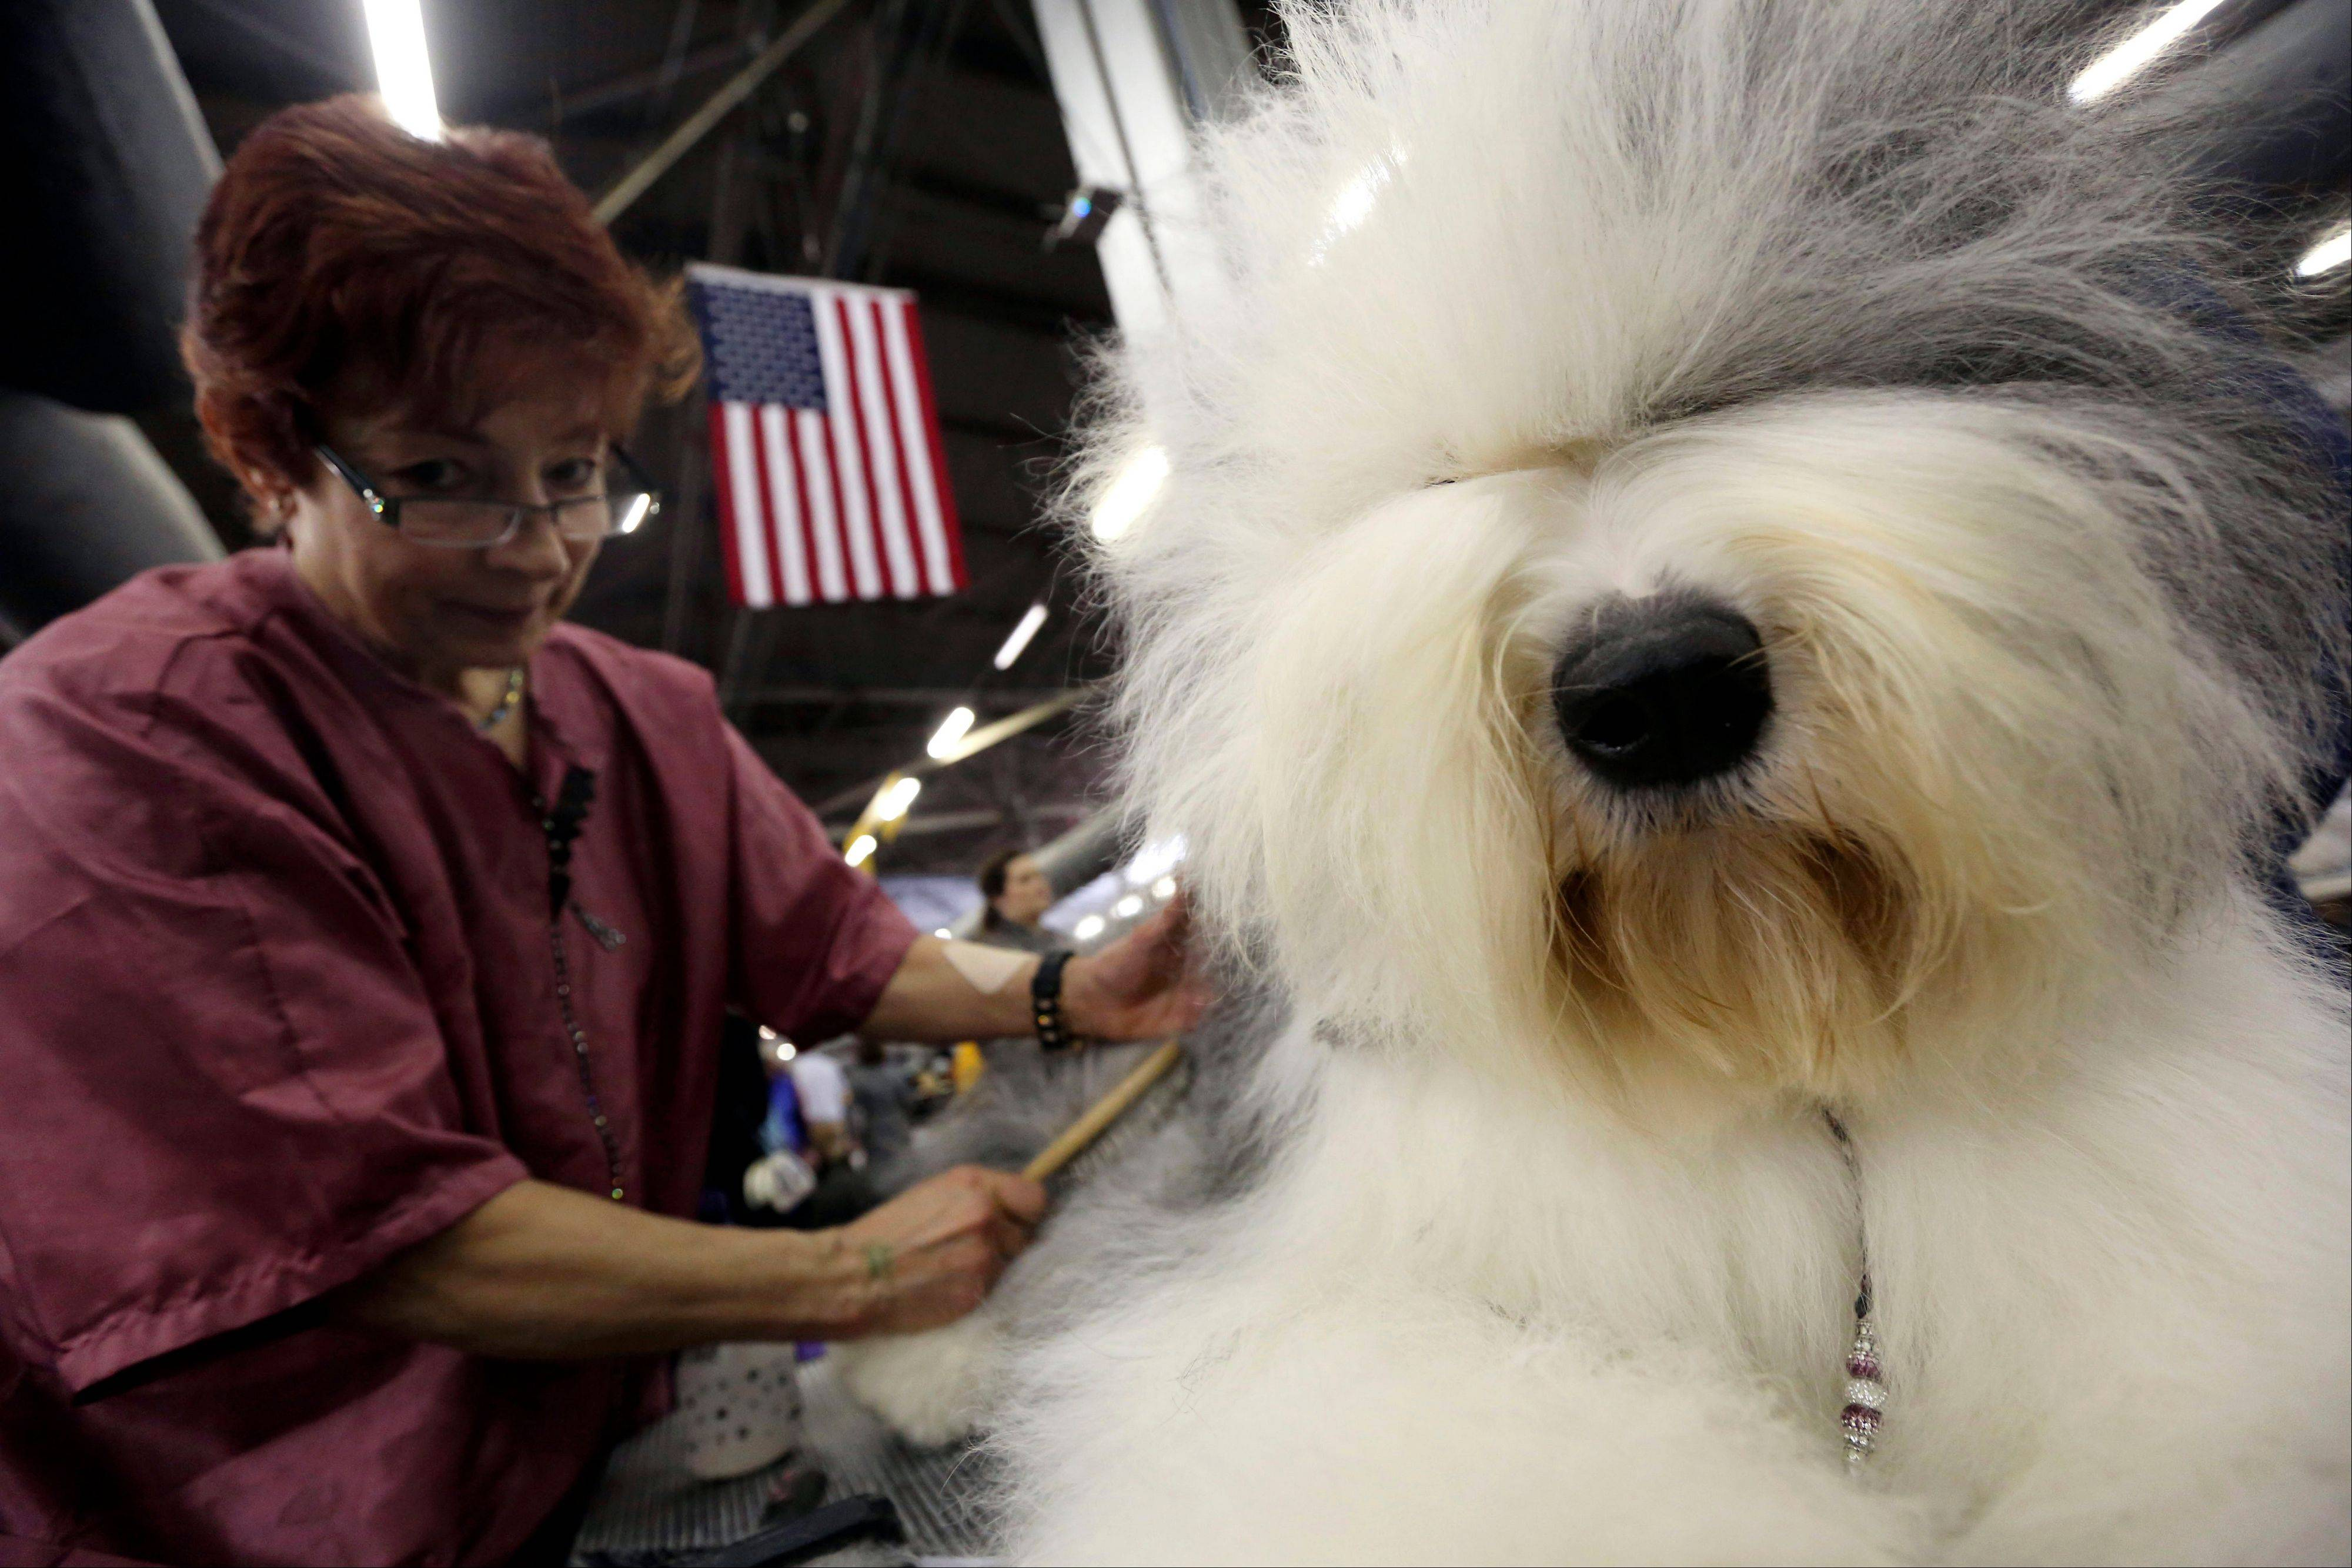 Caroll Geiser, of Rochester, N.Y., grooms Eva, a 3-year-old Old English Sheep dog, during the 137th Westminster Kennel Club Dog Show Monday in New York.